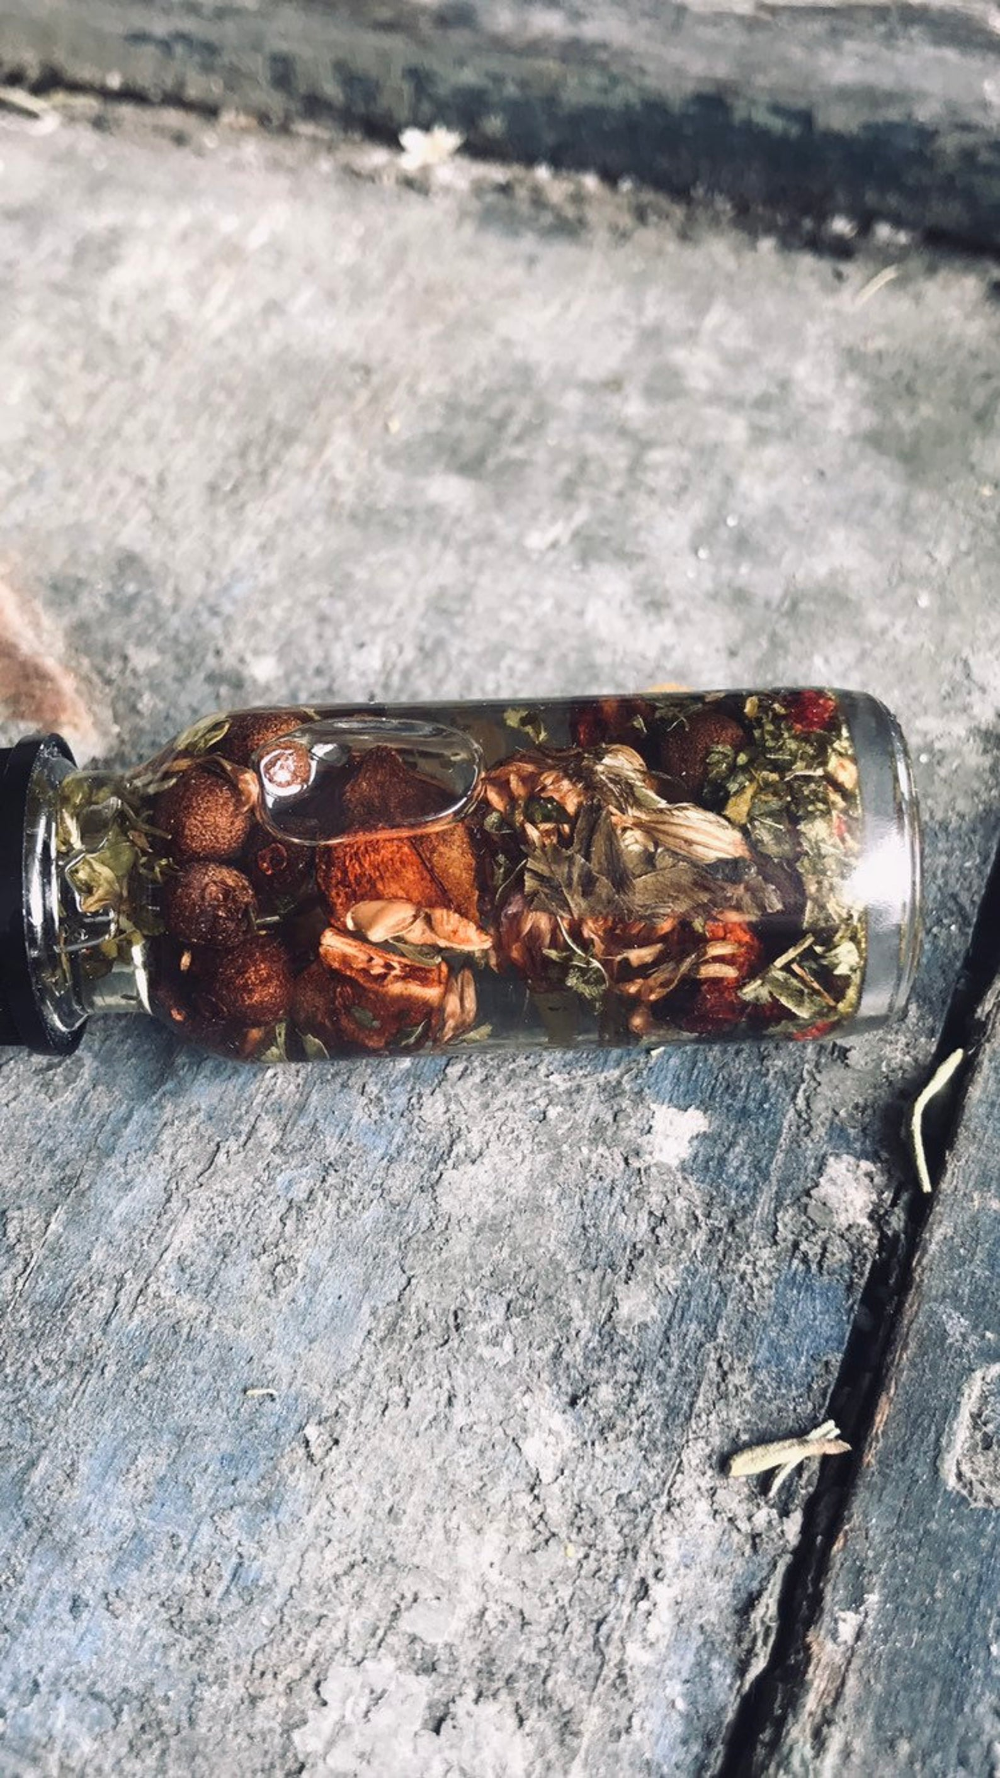 Luck Ritual Oil for spells, charms, witchcraft supplies and starter kits #greenwitchcraft Luck Ritual Oil for spells charms witchcraft supplies and | Etsy #greenwitchcraft